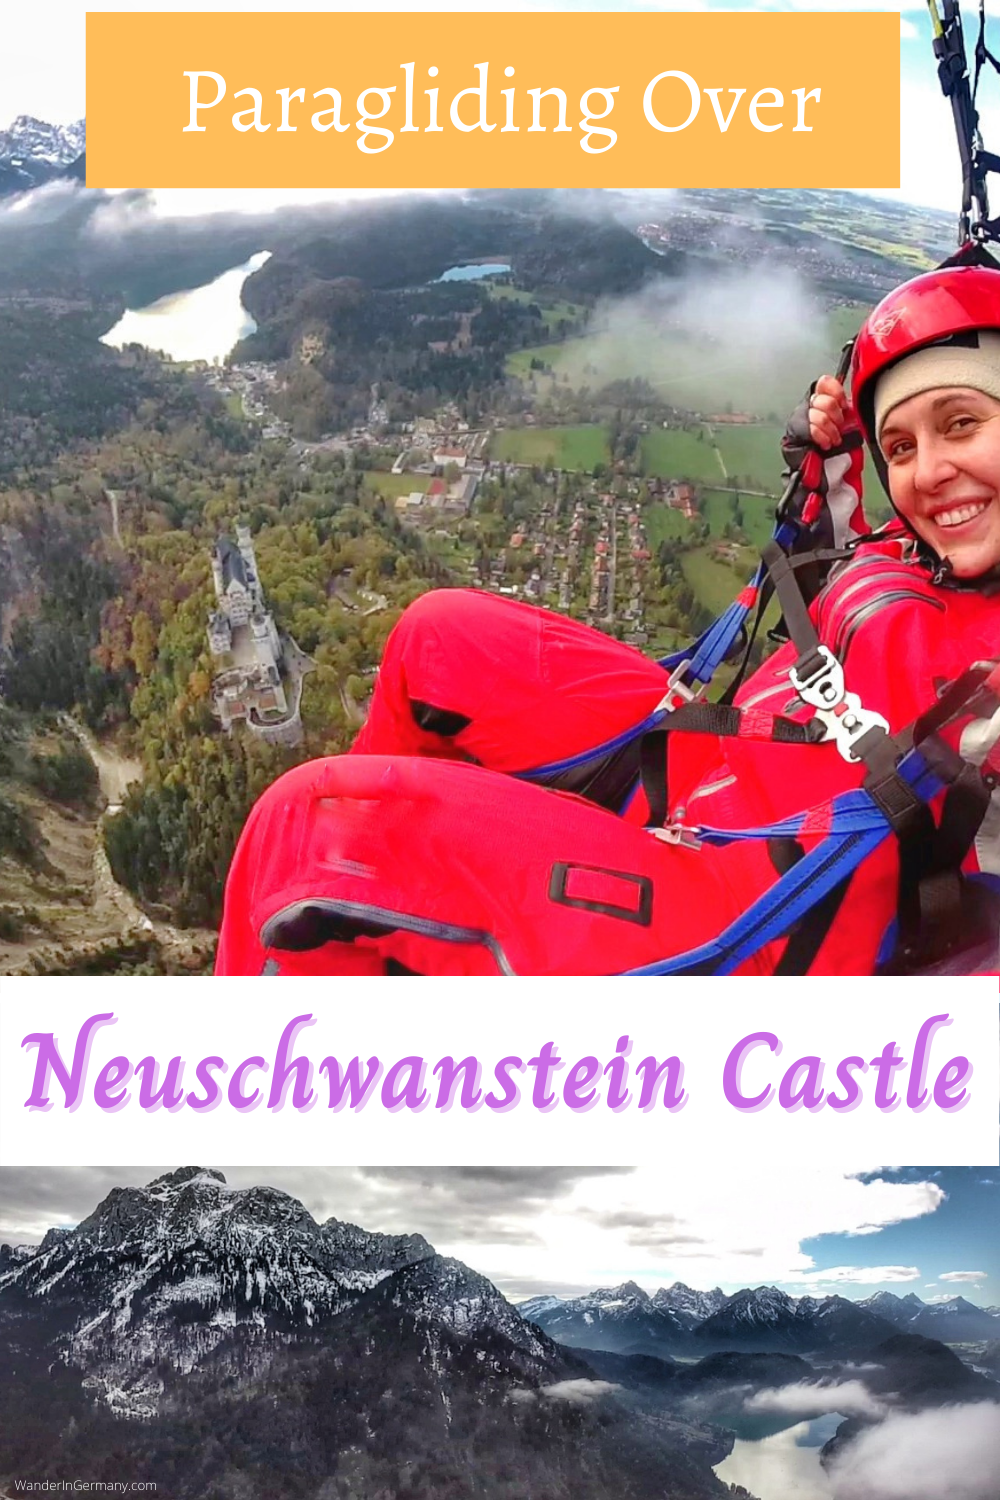 Paragliding over Neuschwanstein Castle in Bavaria Germany